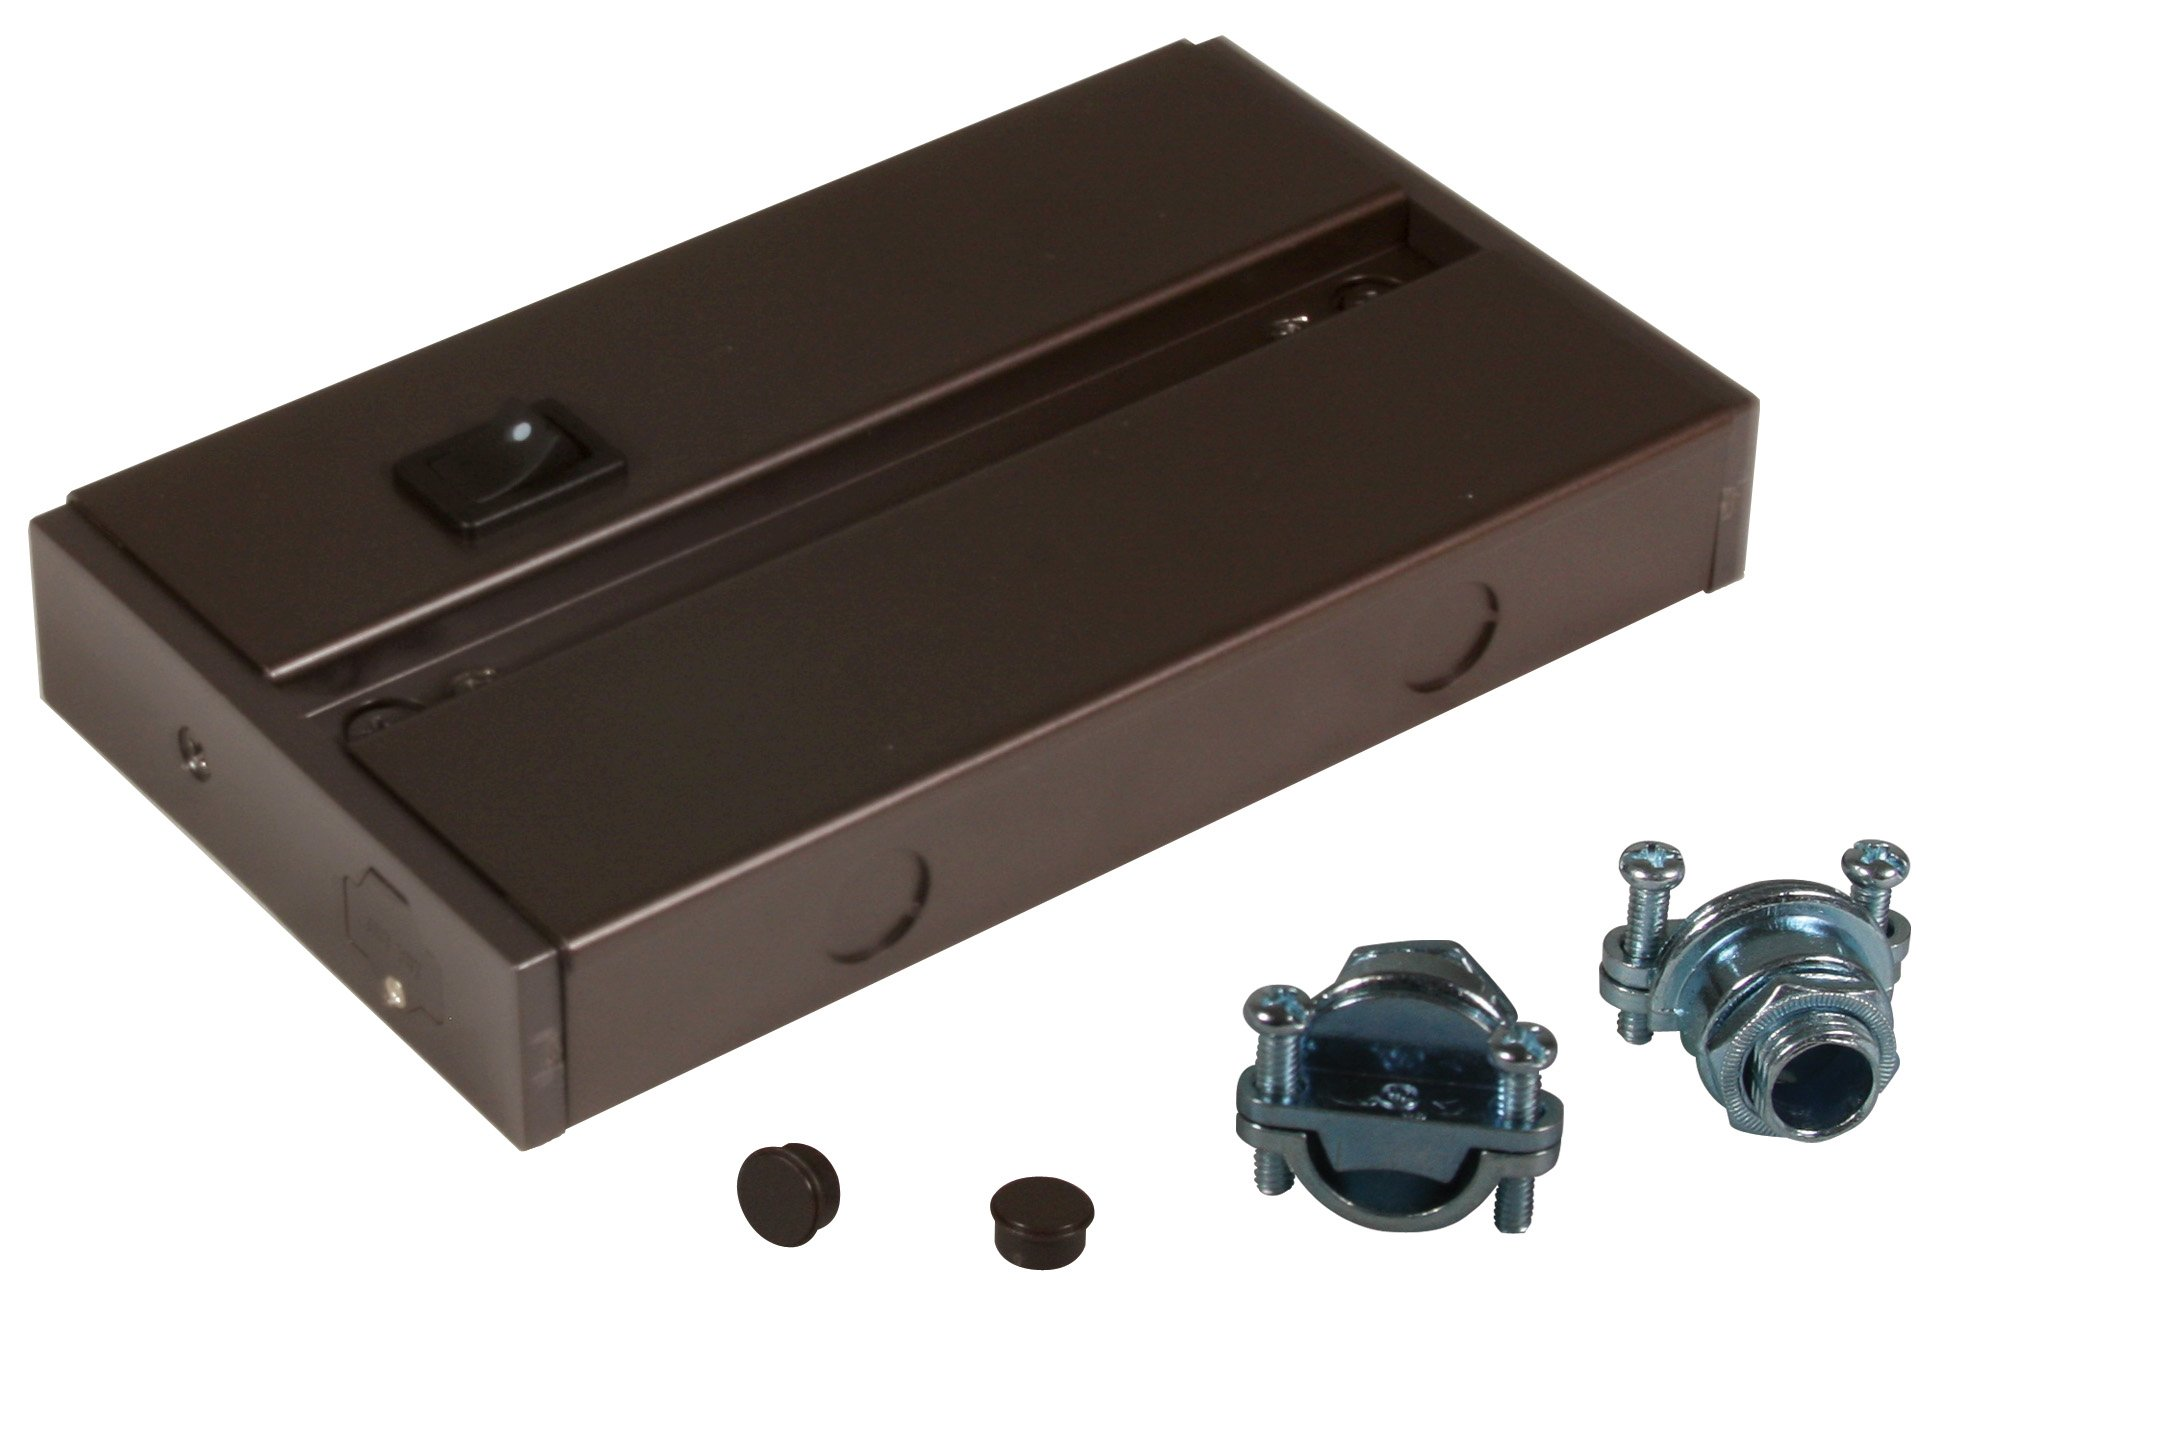 American Lighting ALC-BOX-DB Hardwire Box for LED Complete Fixtures, 3/8 Cable Connector Included, Dark Bronze